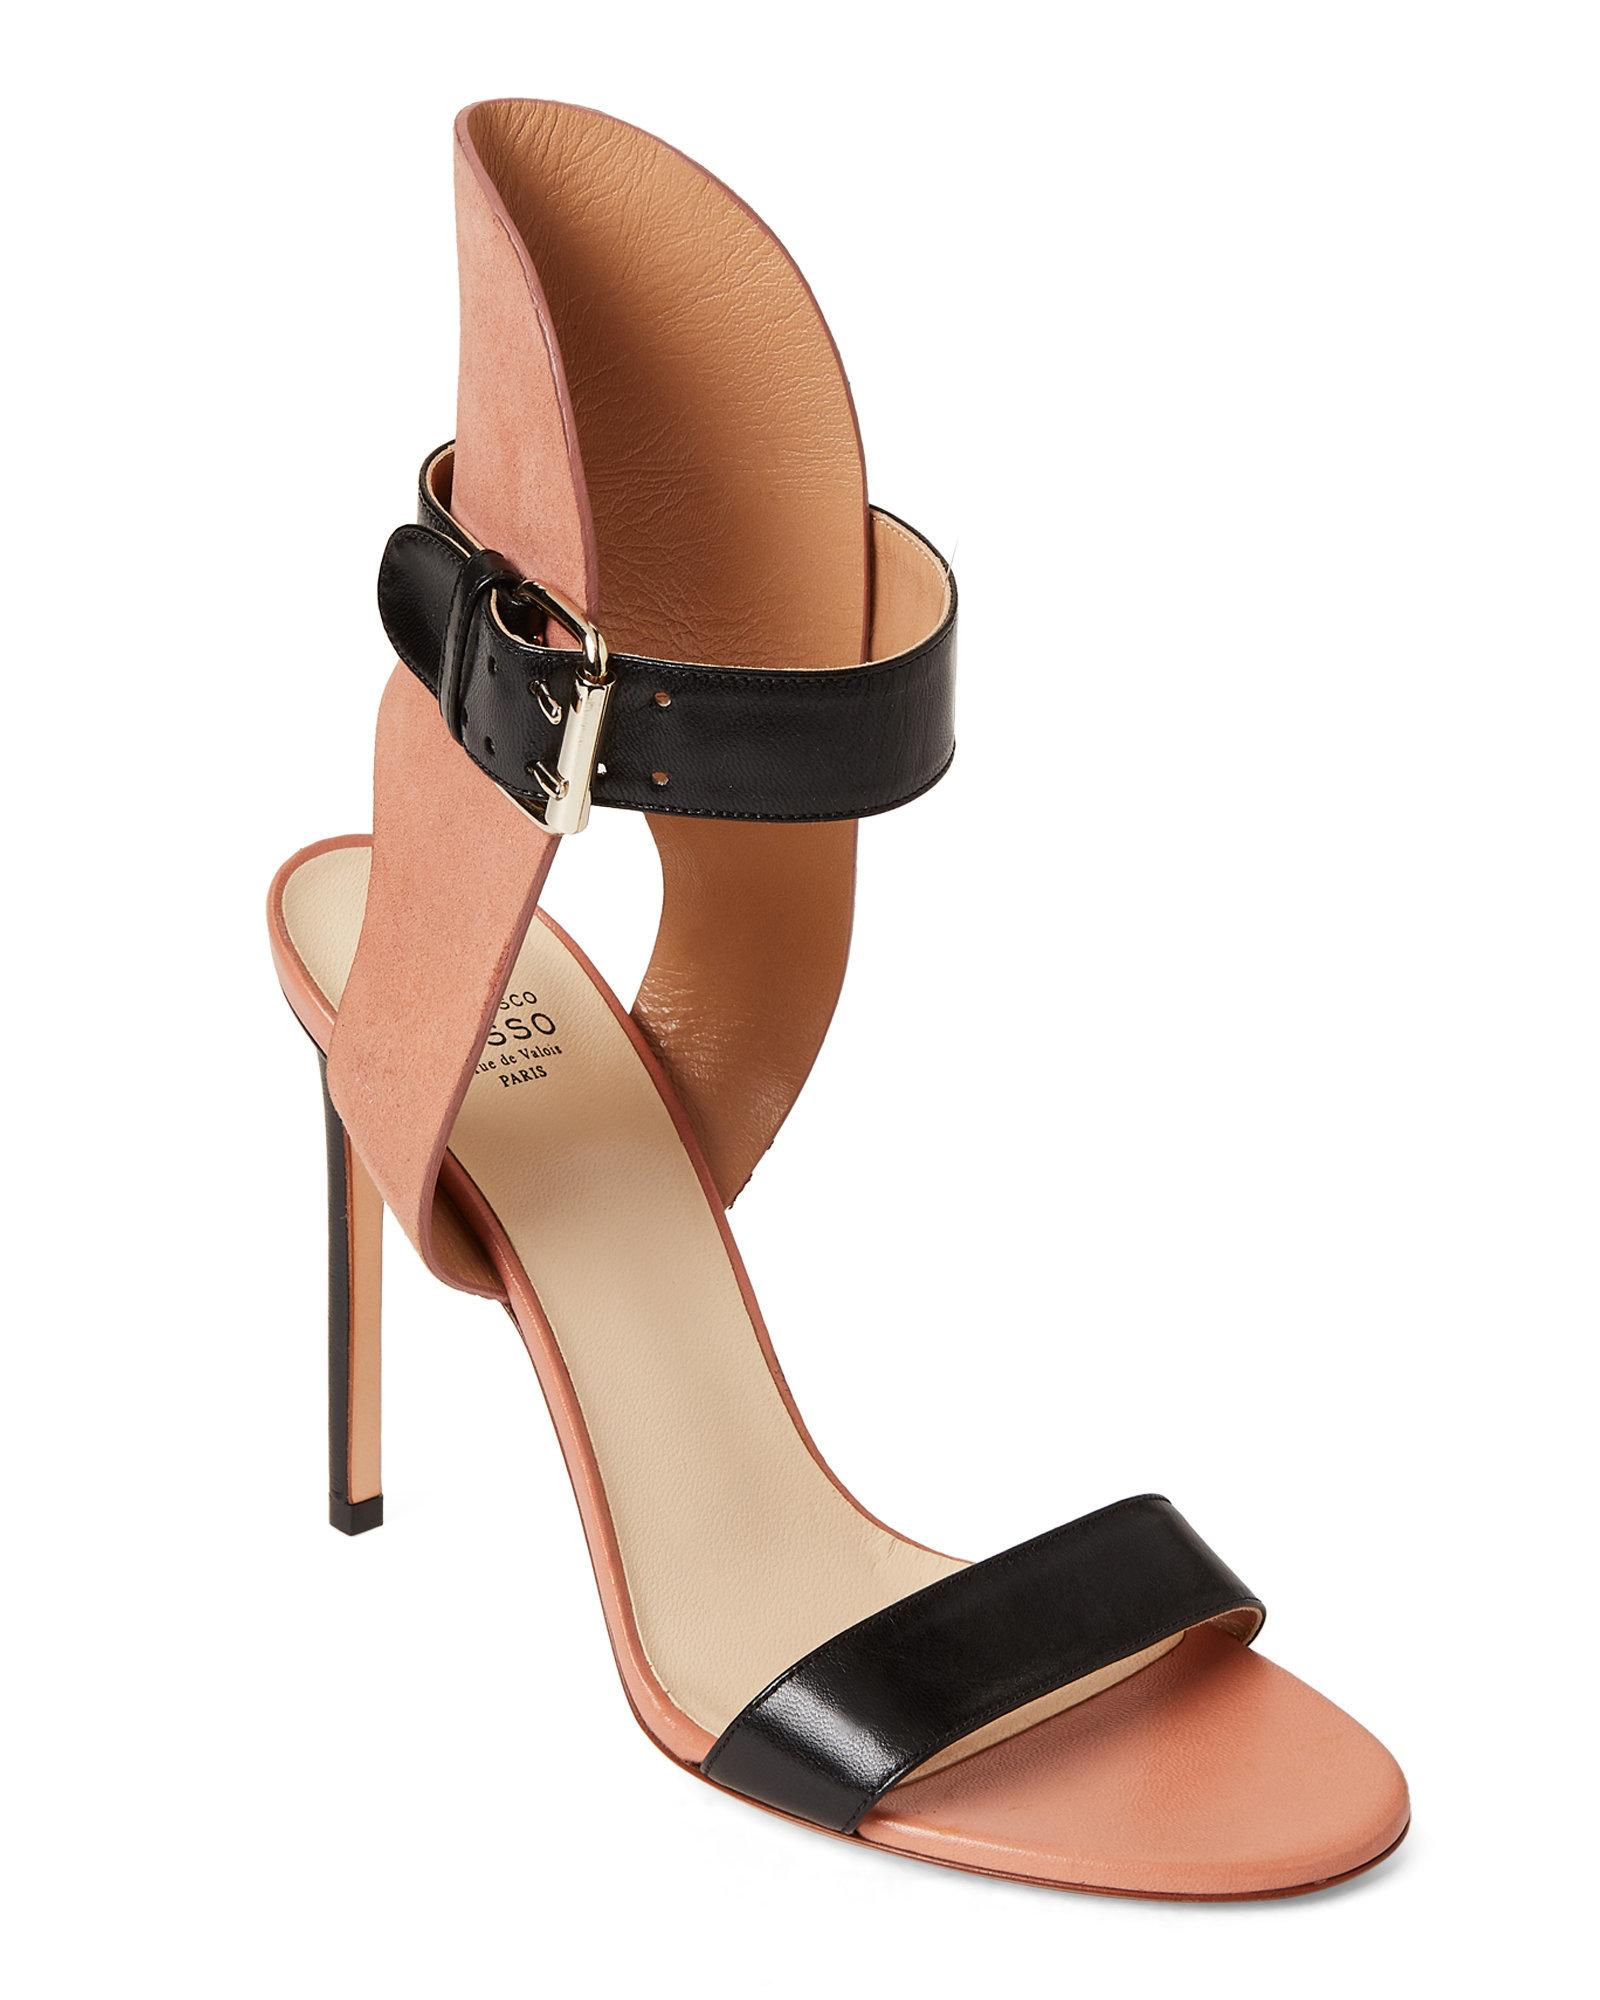 3788d9f36251 Lyst - Francesco Russo Leather Ankle Strap Sandals in Black